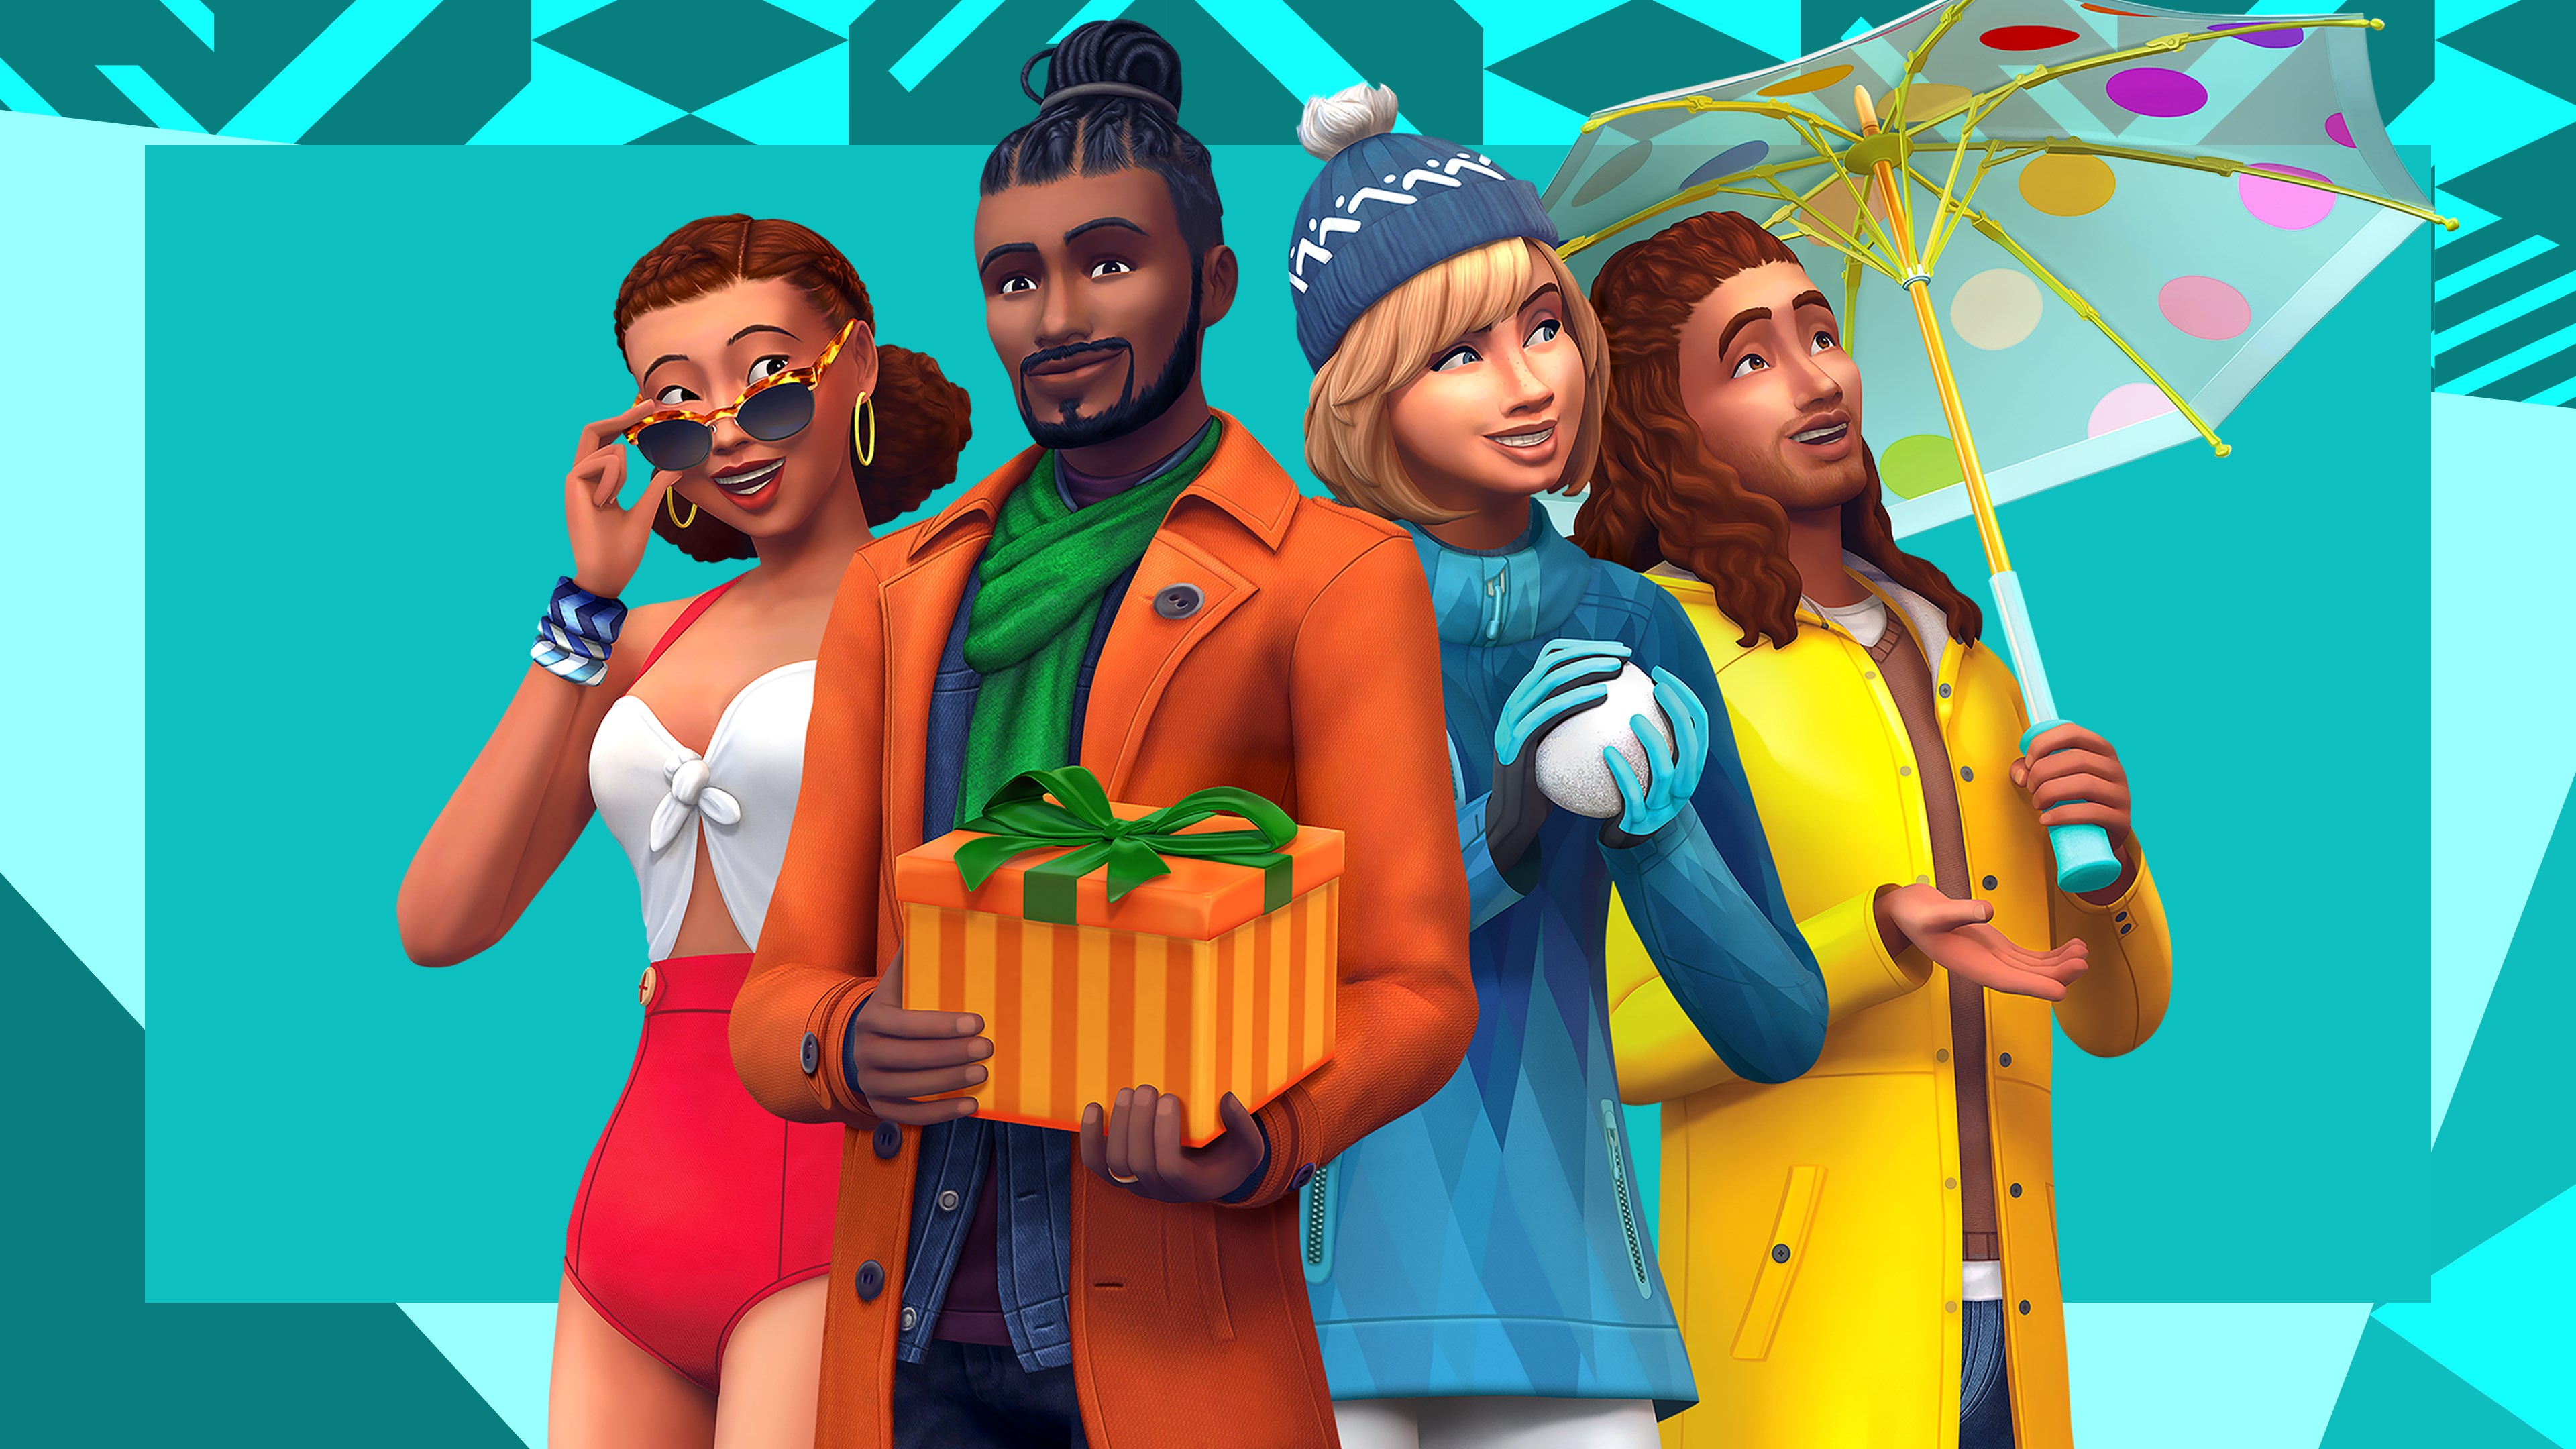 The Sims 5 Gameplay Features Wishlist Things to Expect from Next-Gen Life Simulation Game